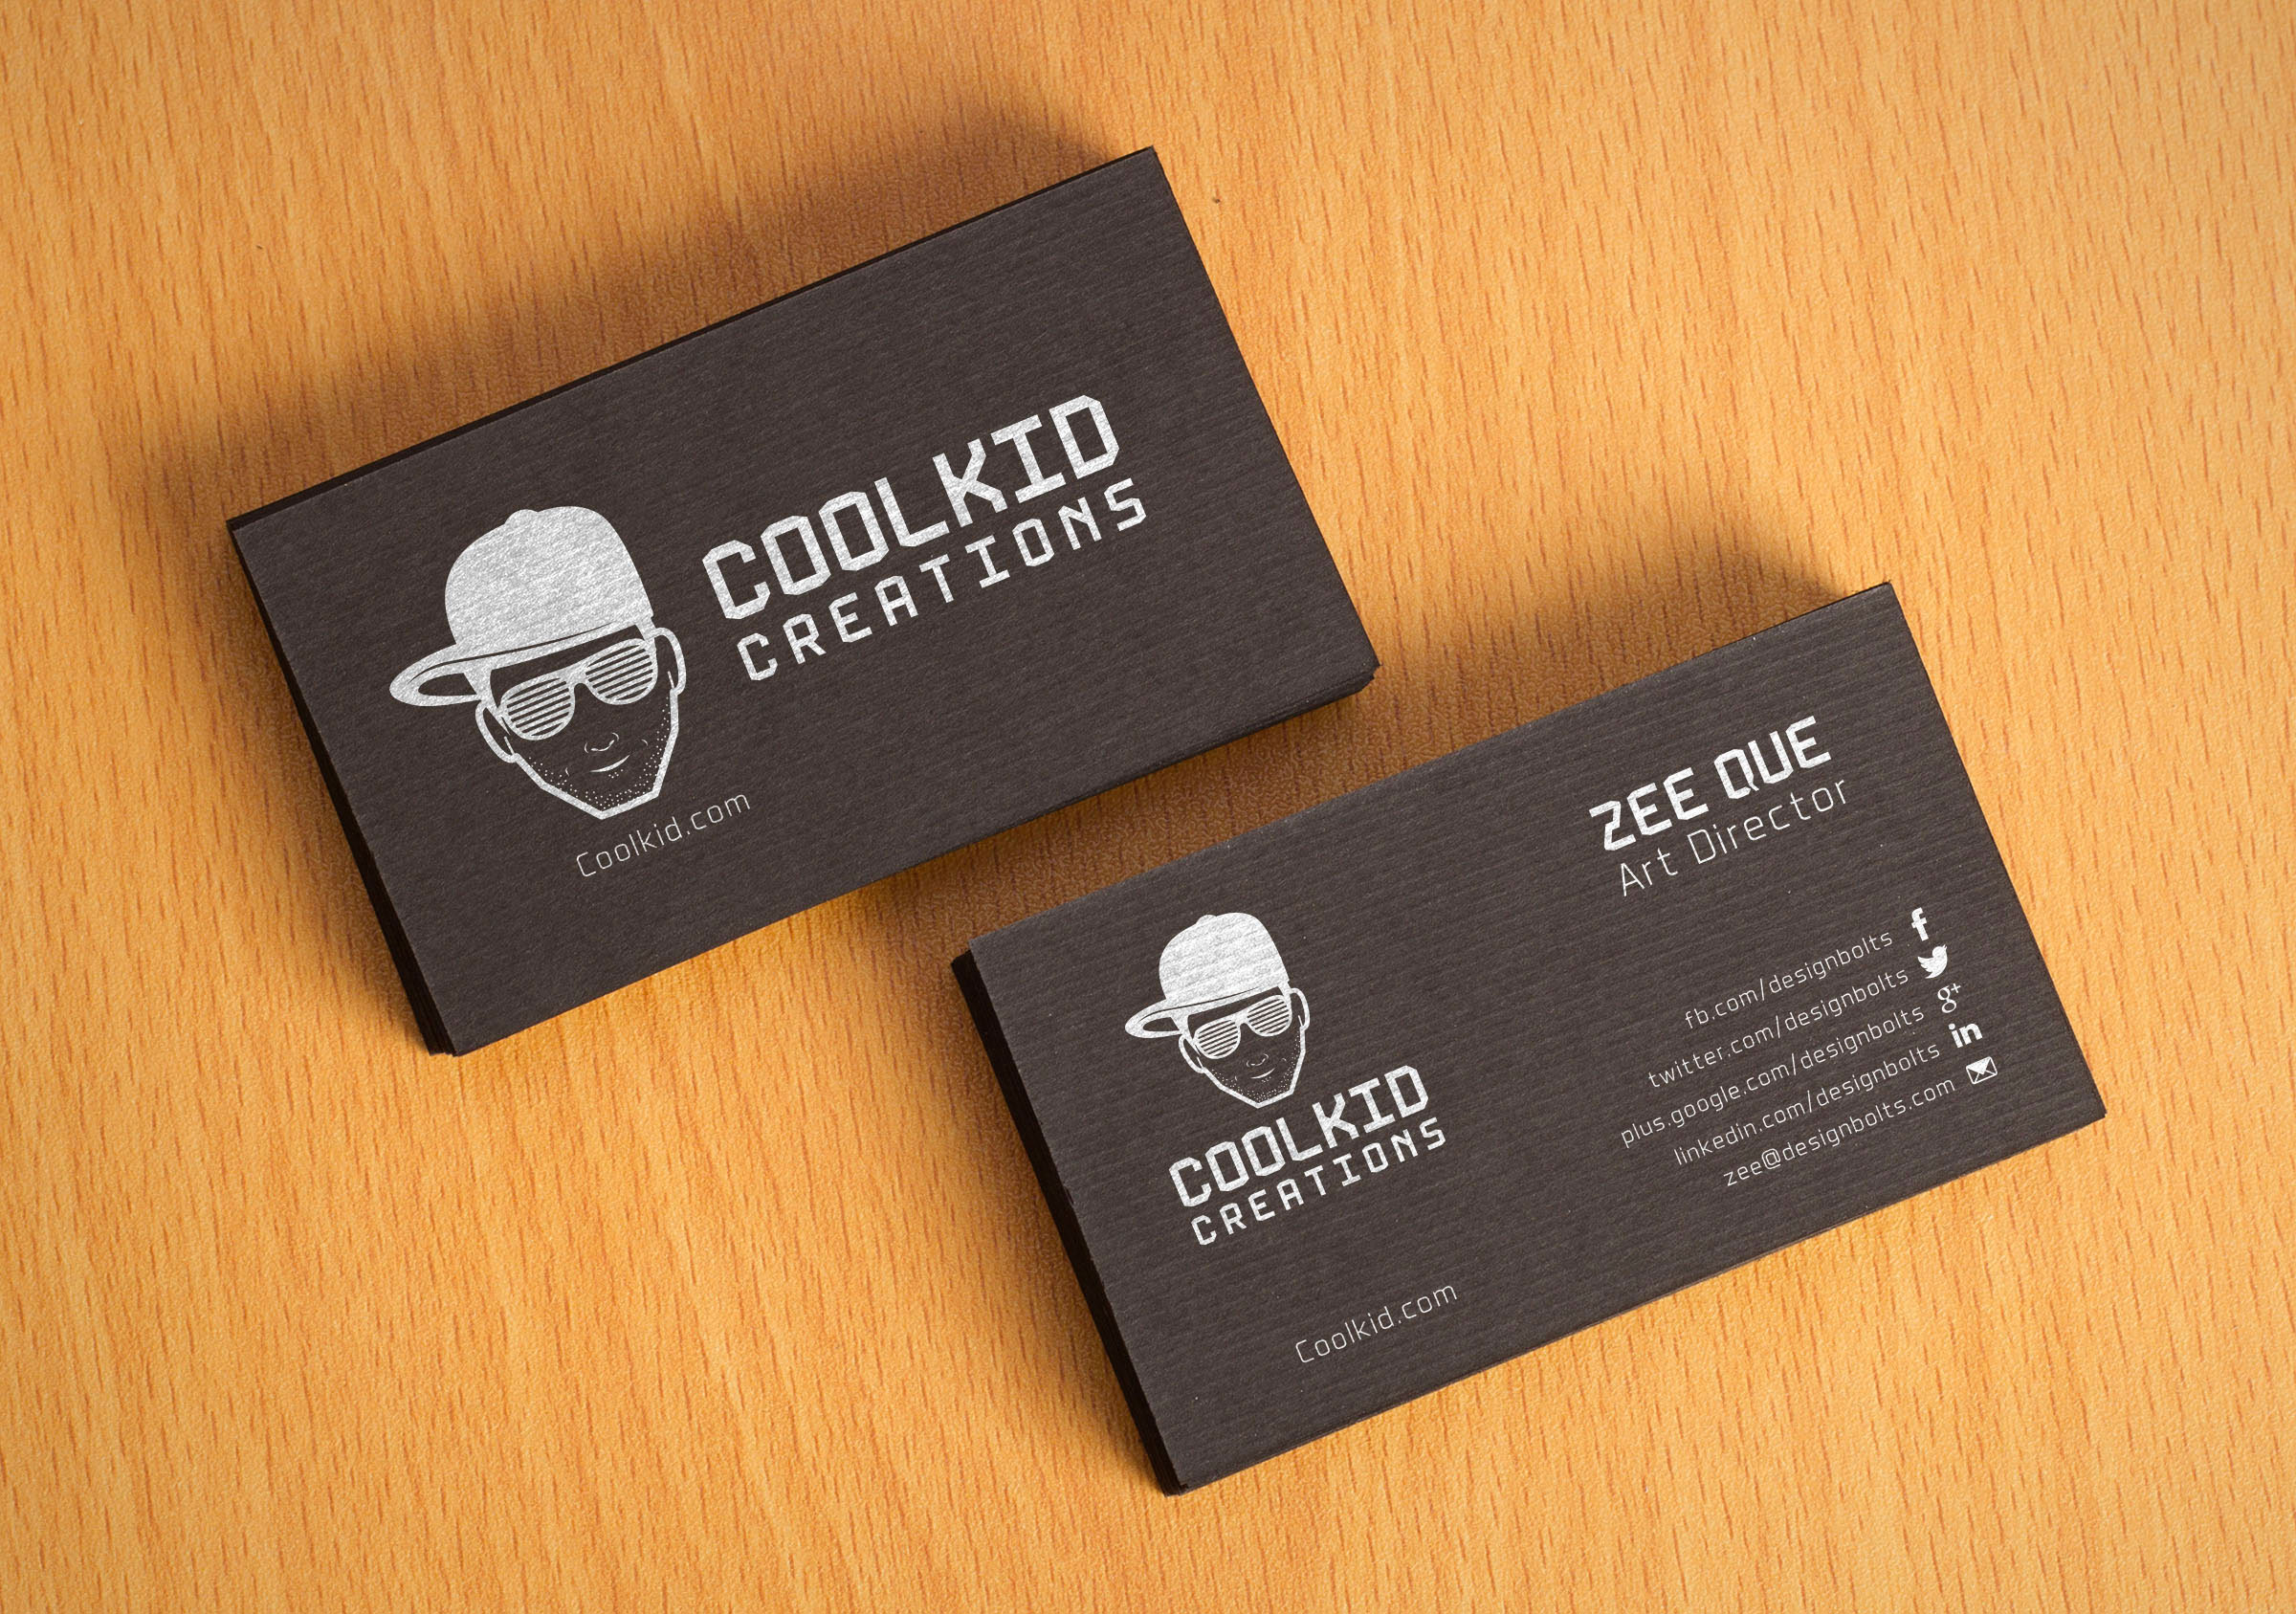 free black textured business card design template mockup psd - Fancy Business Cards